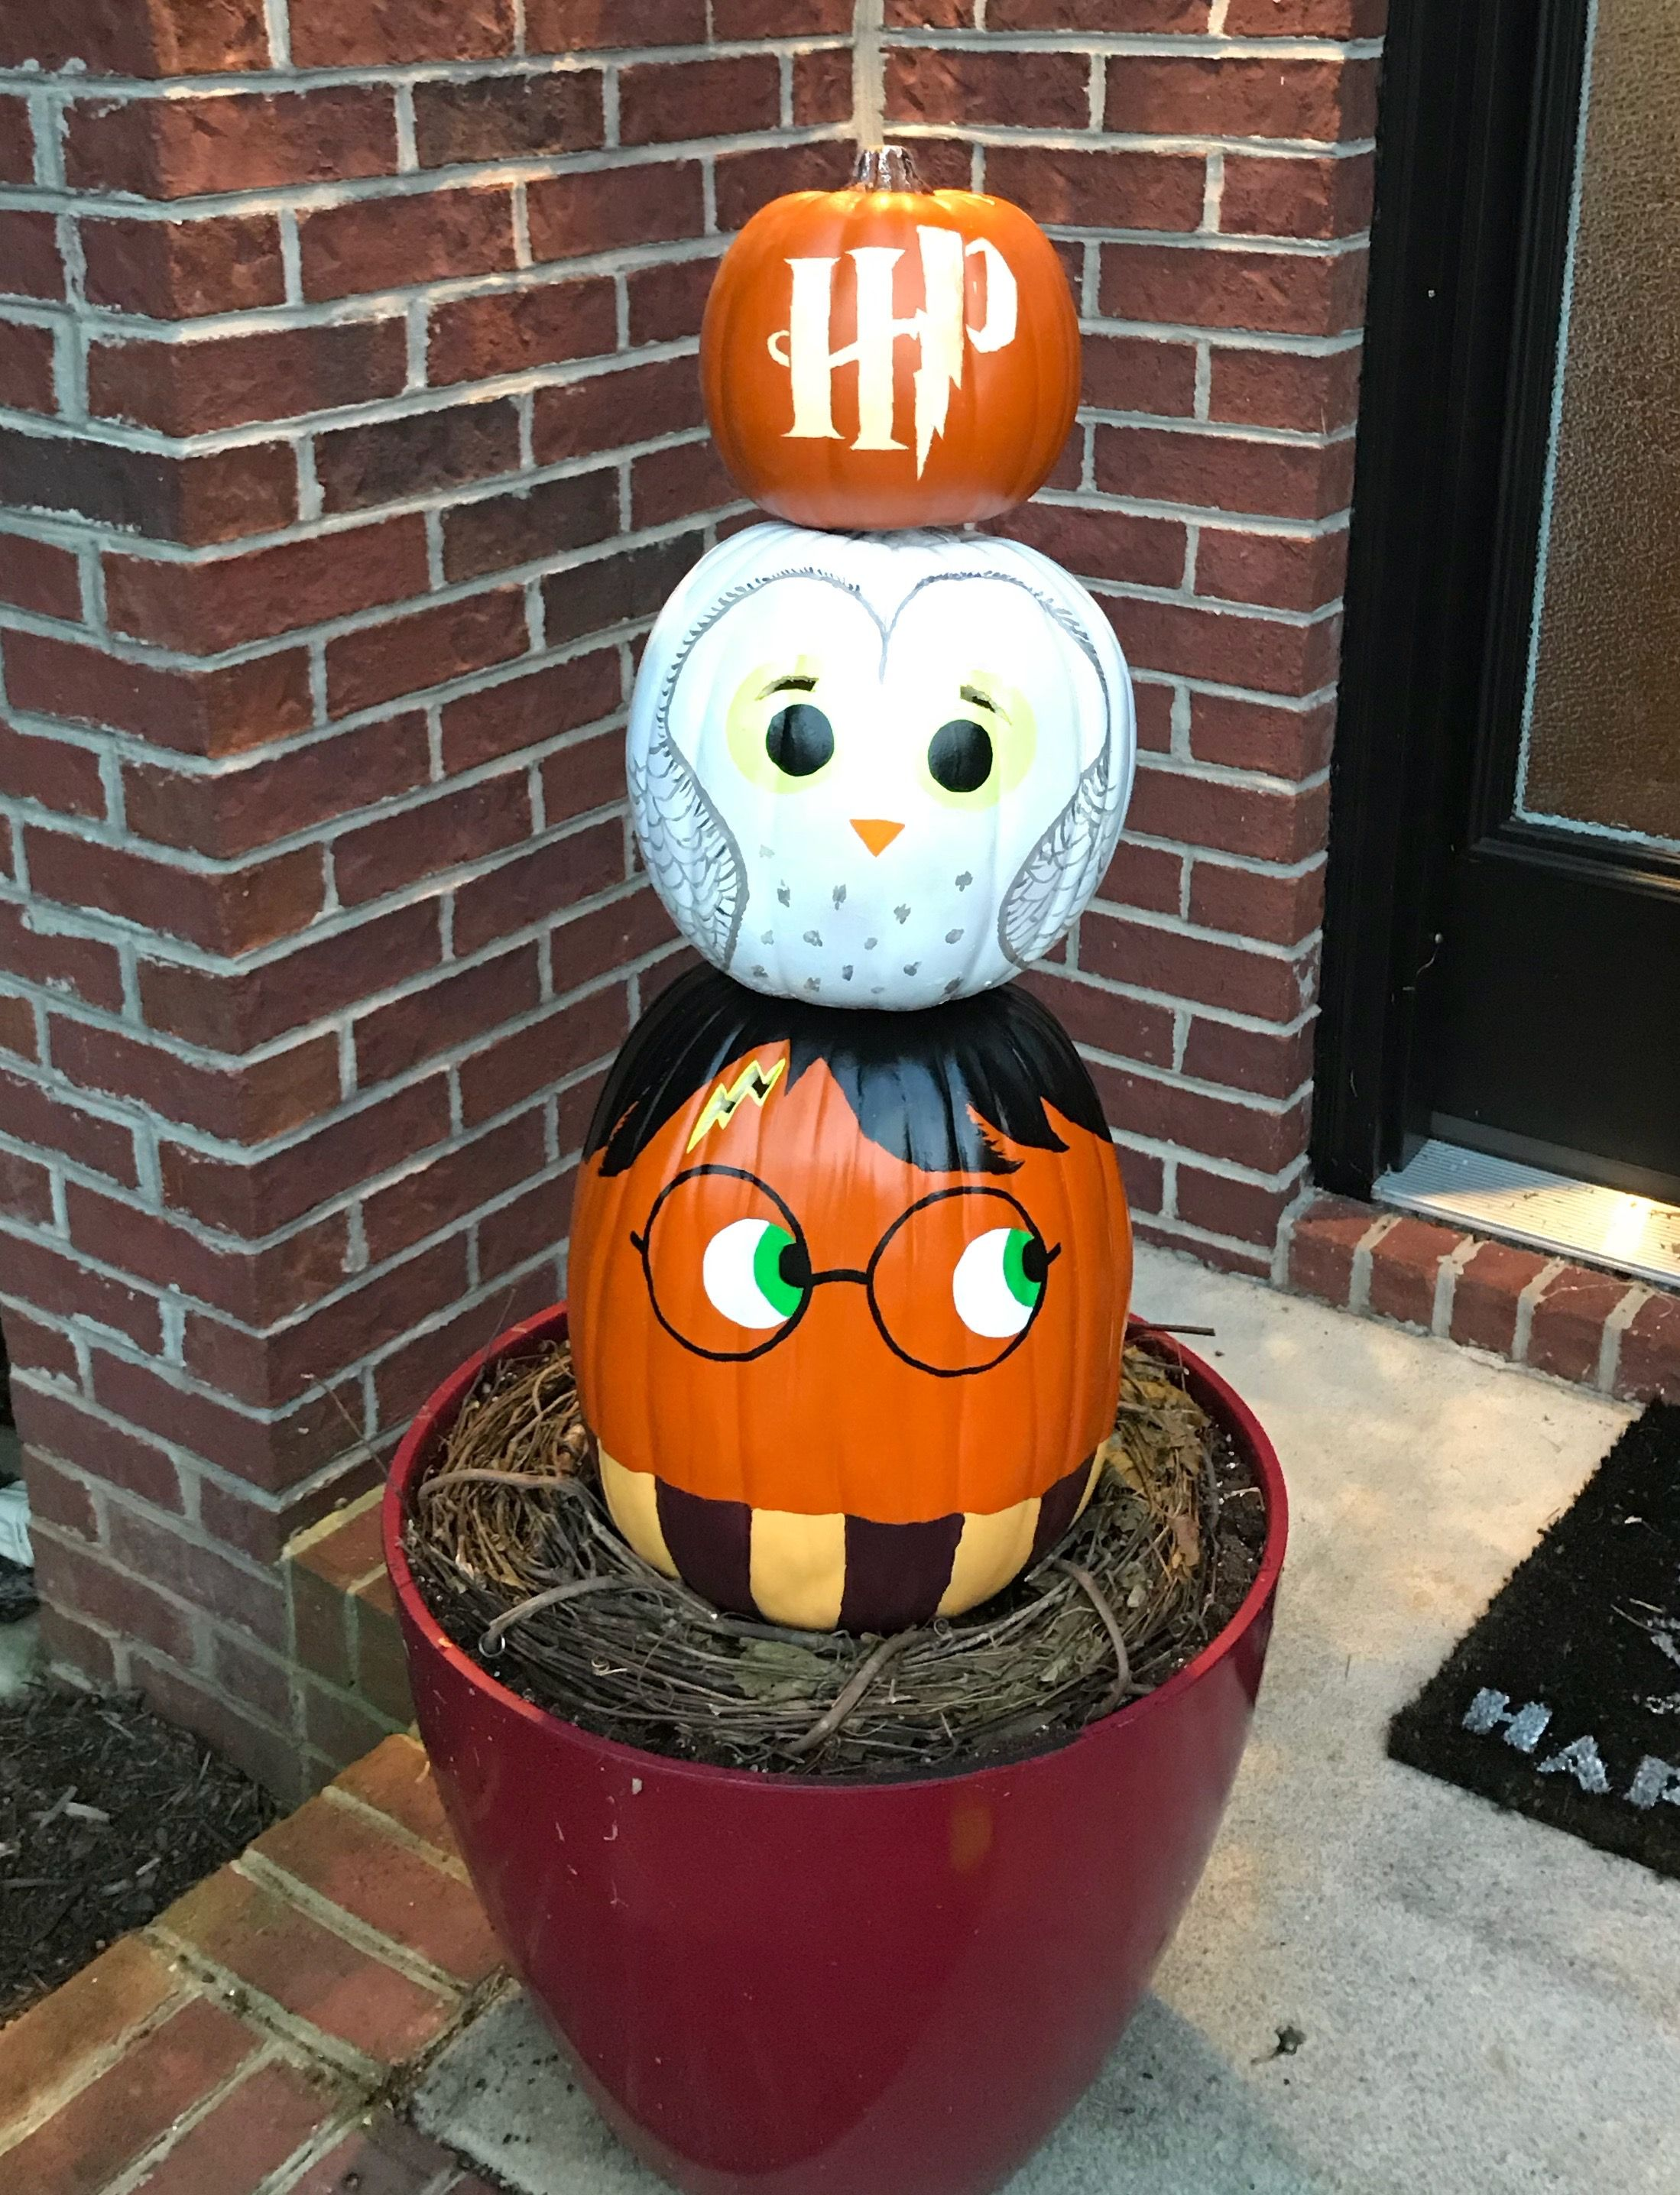 Harry Potter pumpkin stack with Hedwig and his symbol